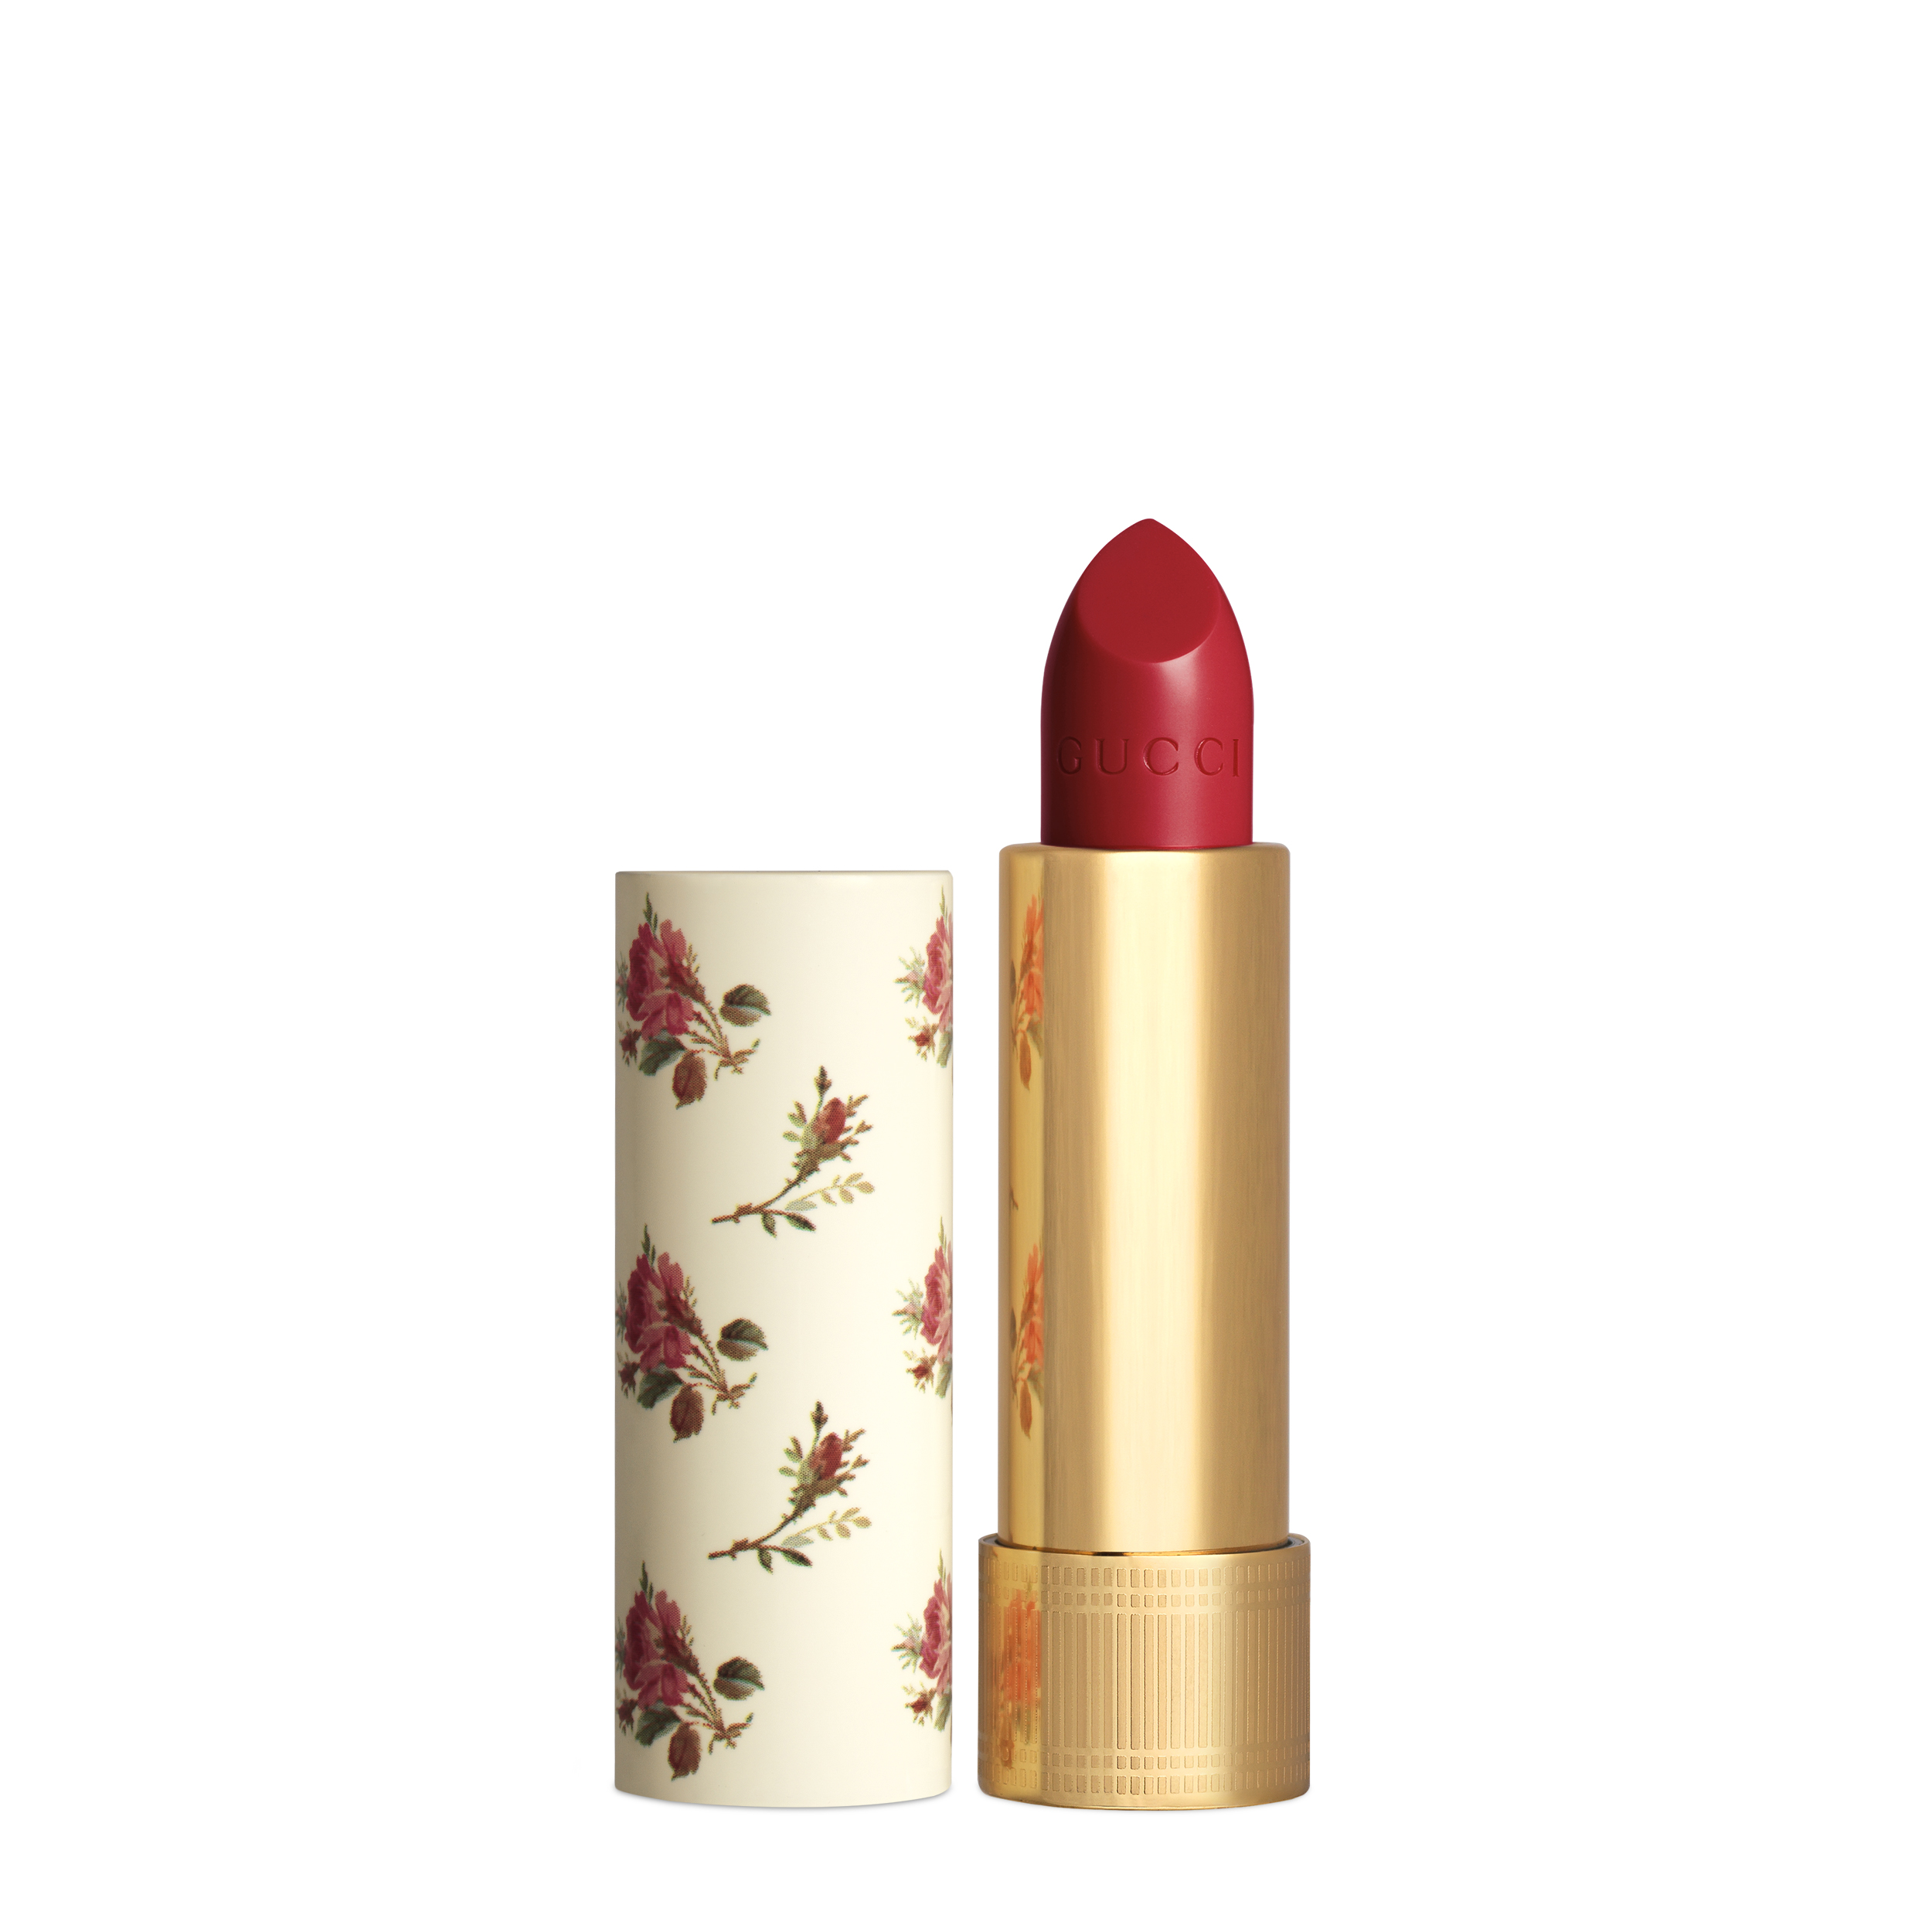 Gucci_Sheer-25-Goldie-Red-_Courtesy-of-Gucci.jpg